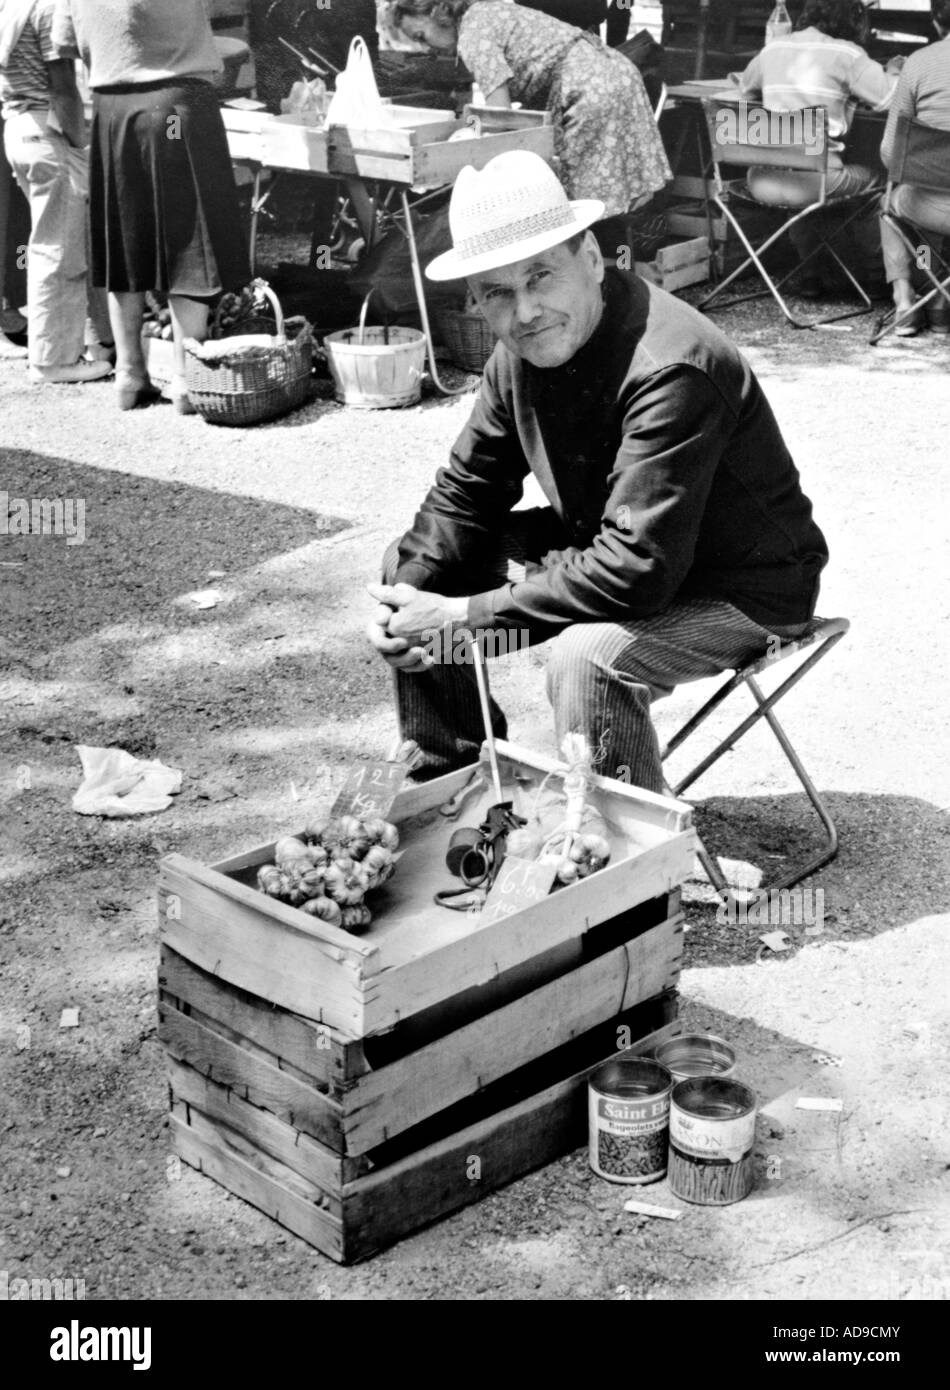 no MR street photography man trying to sell garlic at the market of Caussade in southern France - Stock Image